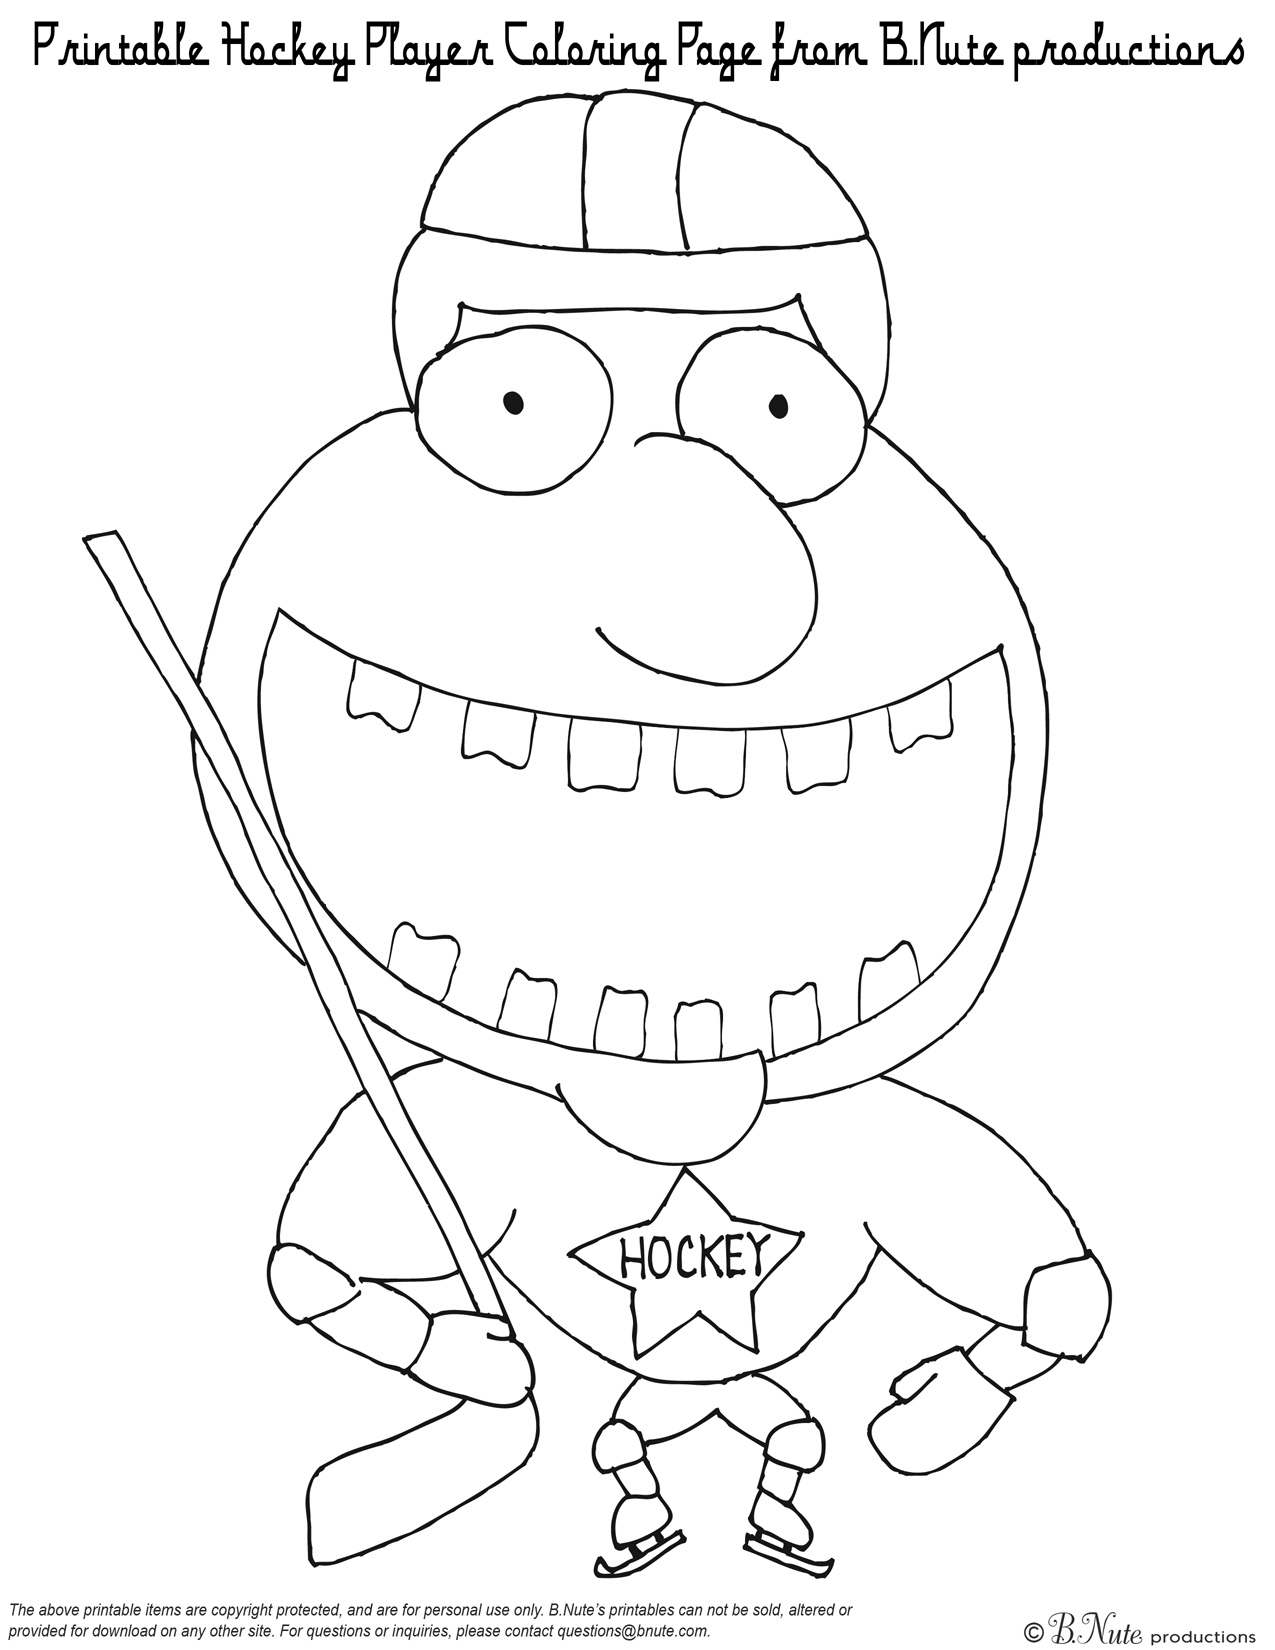 Hockey player coloring pages coloring pages for Hockey coloring pages printable